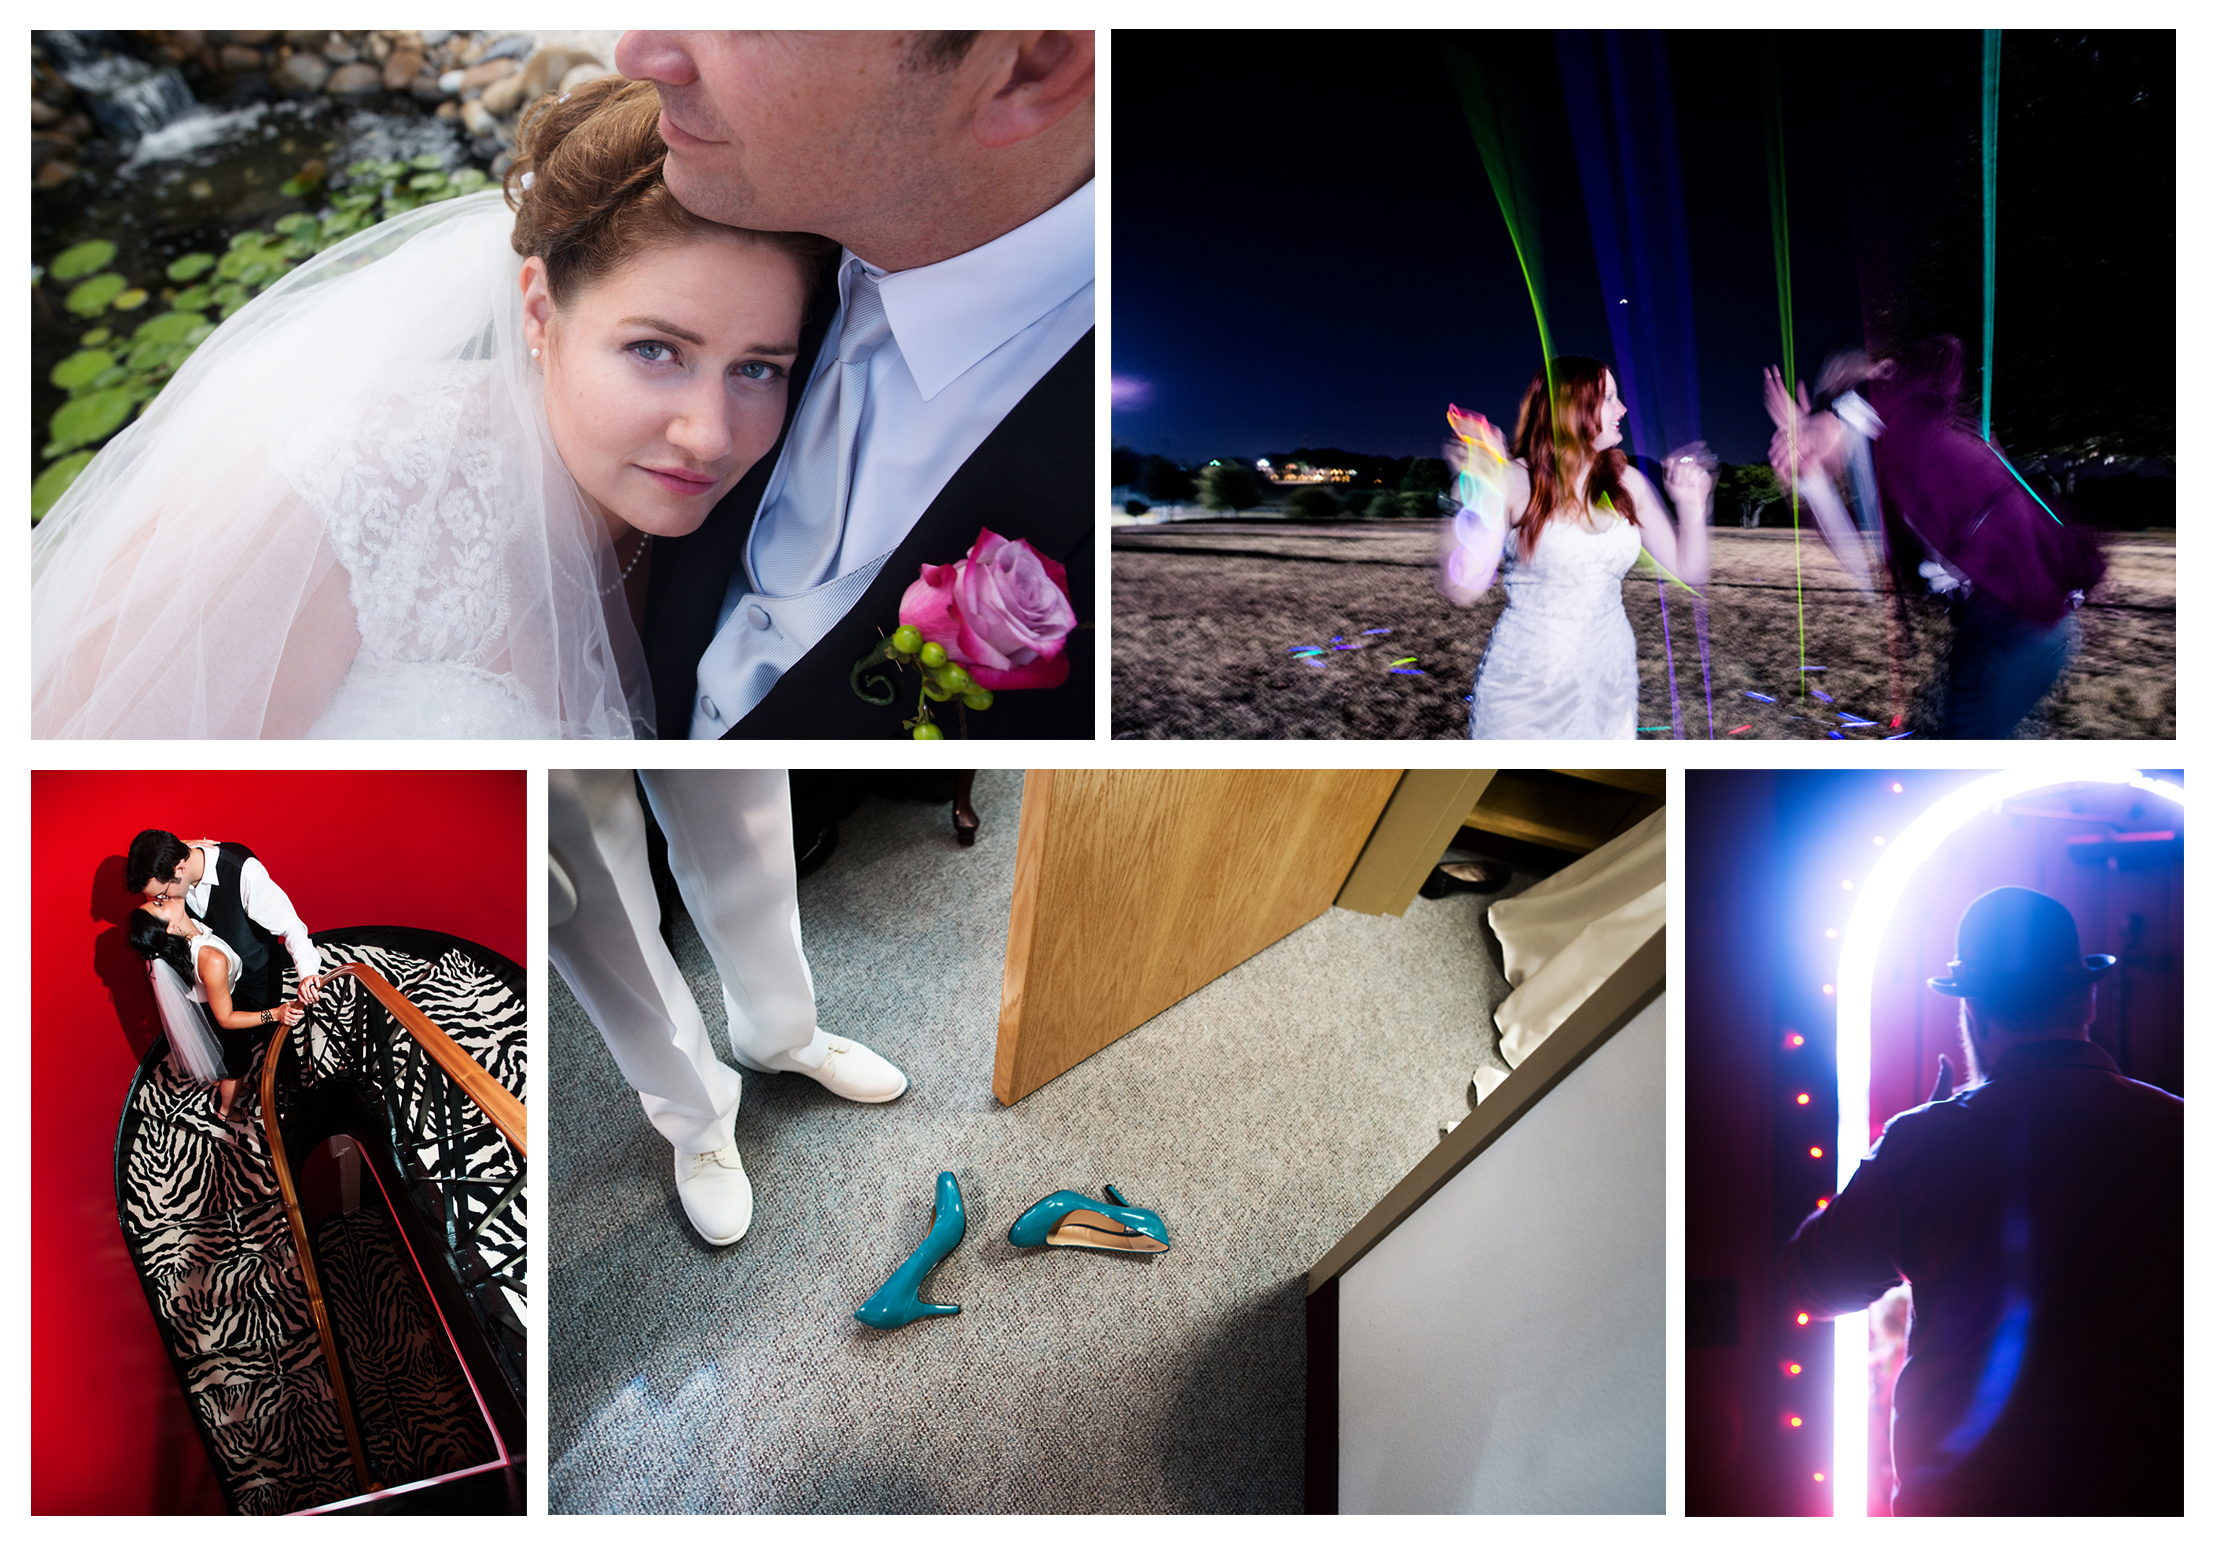 how-to-book-the-right-wedding-photographer-style-cipyright-breonny-lee-loveisart